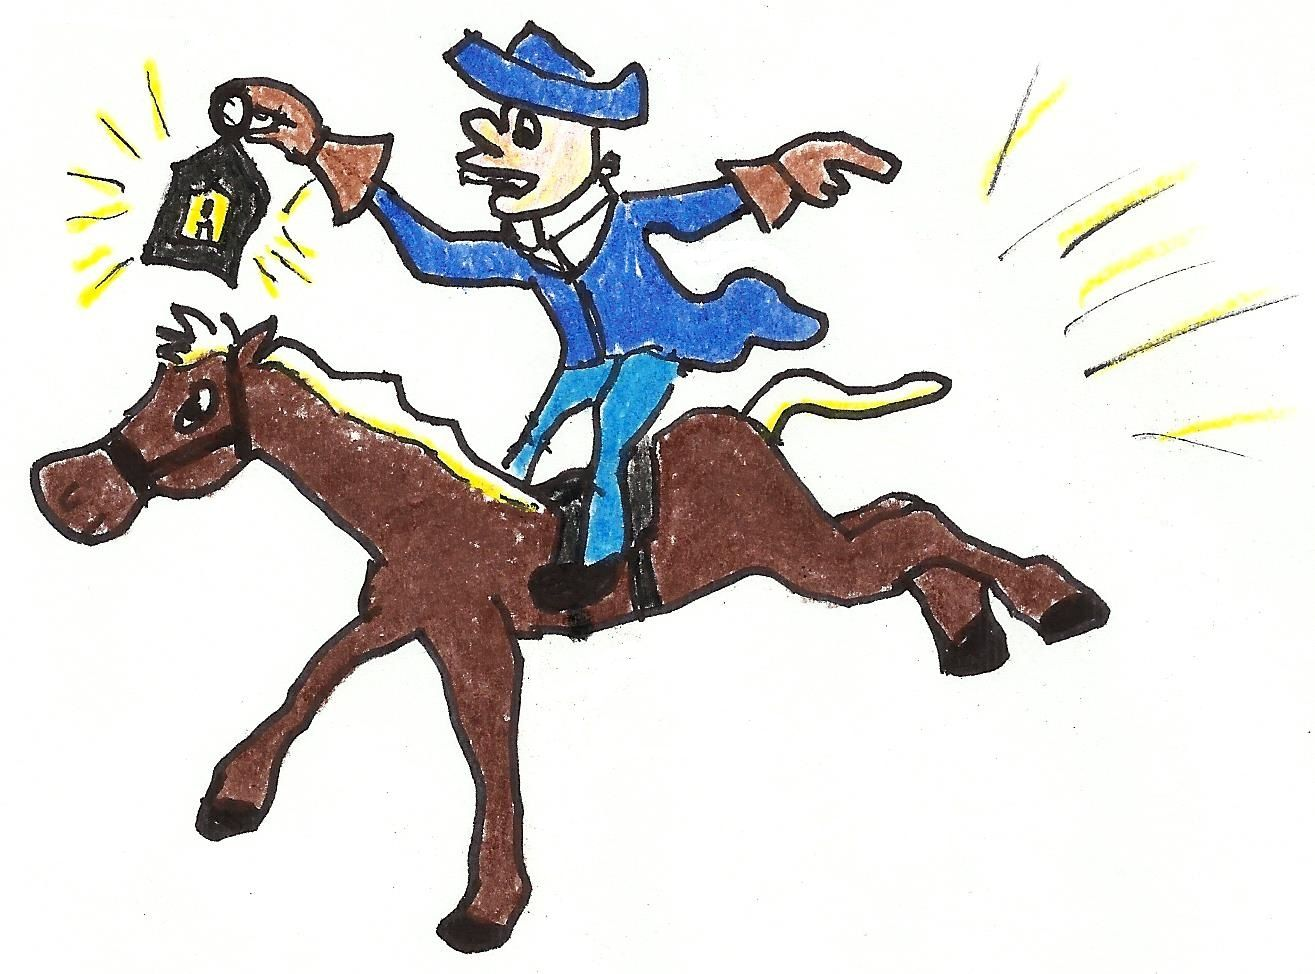 paul revere midnight ride clipart cartoons pinterest rh pinterest com paul revere midnight ride clipart Paul Revere Pictures of Him